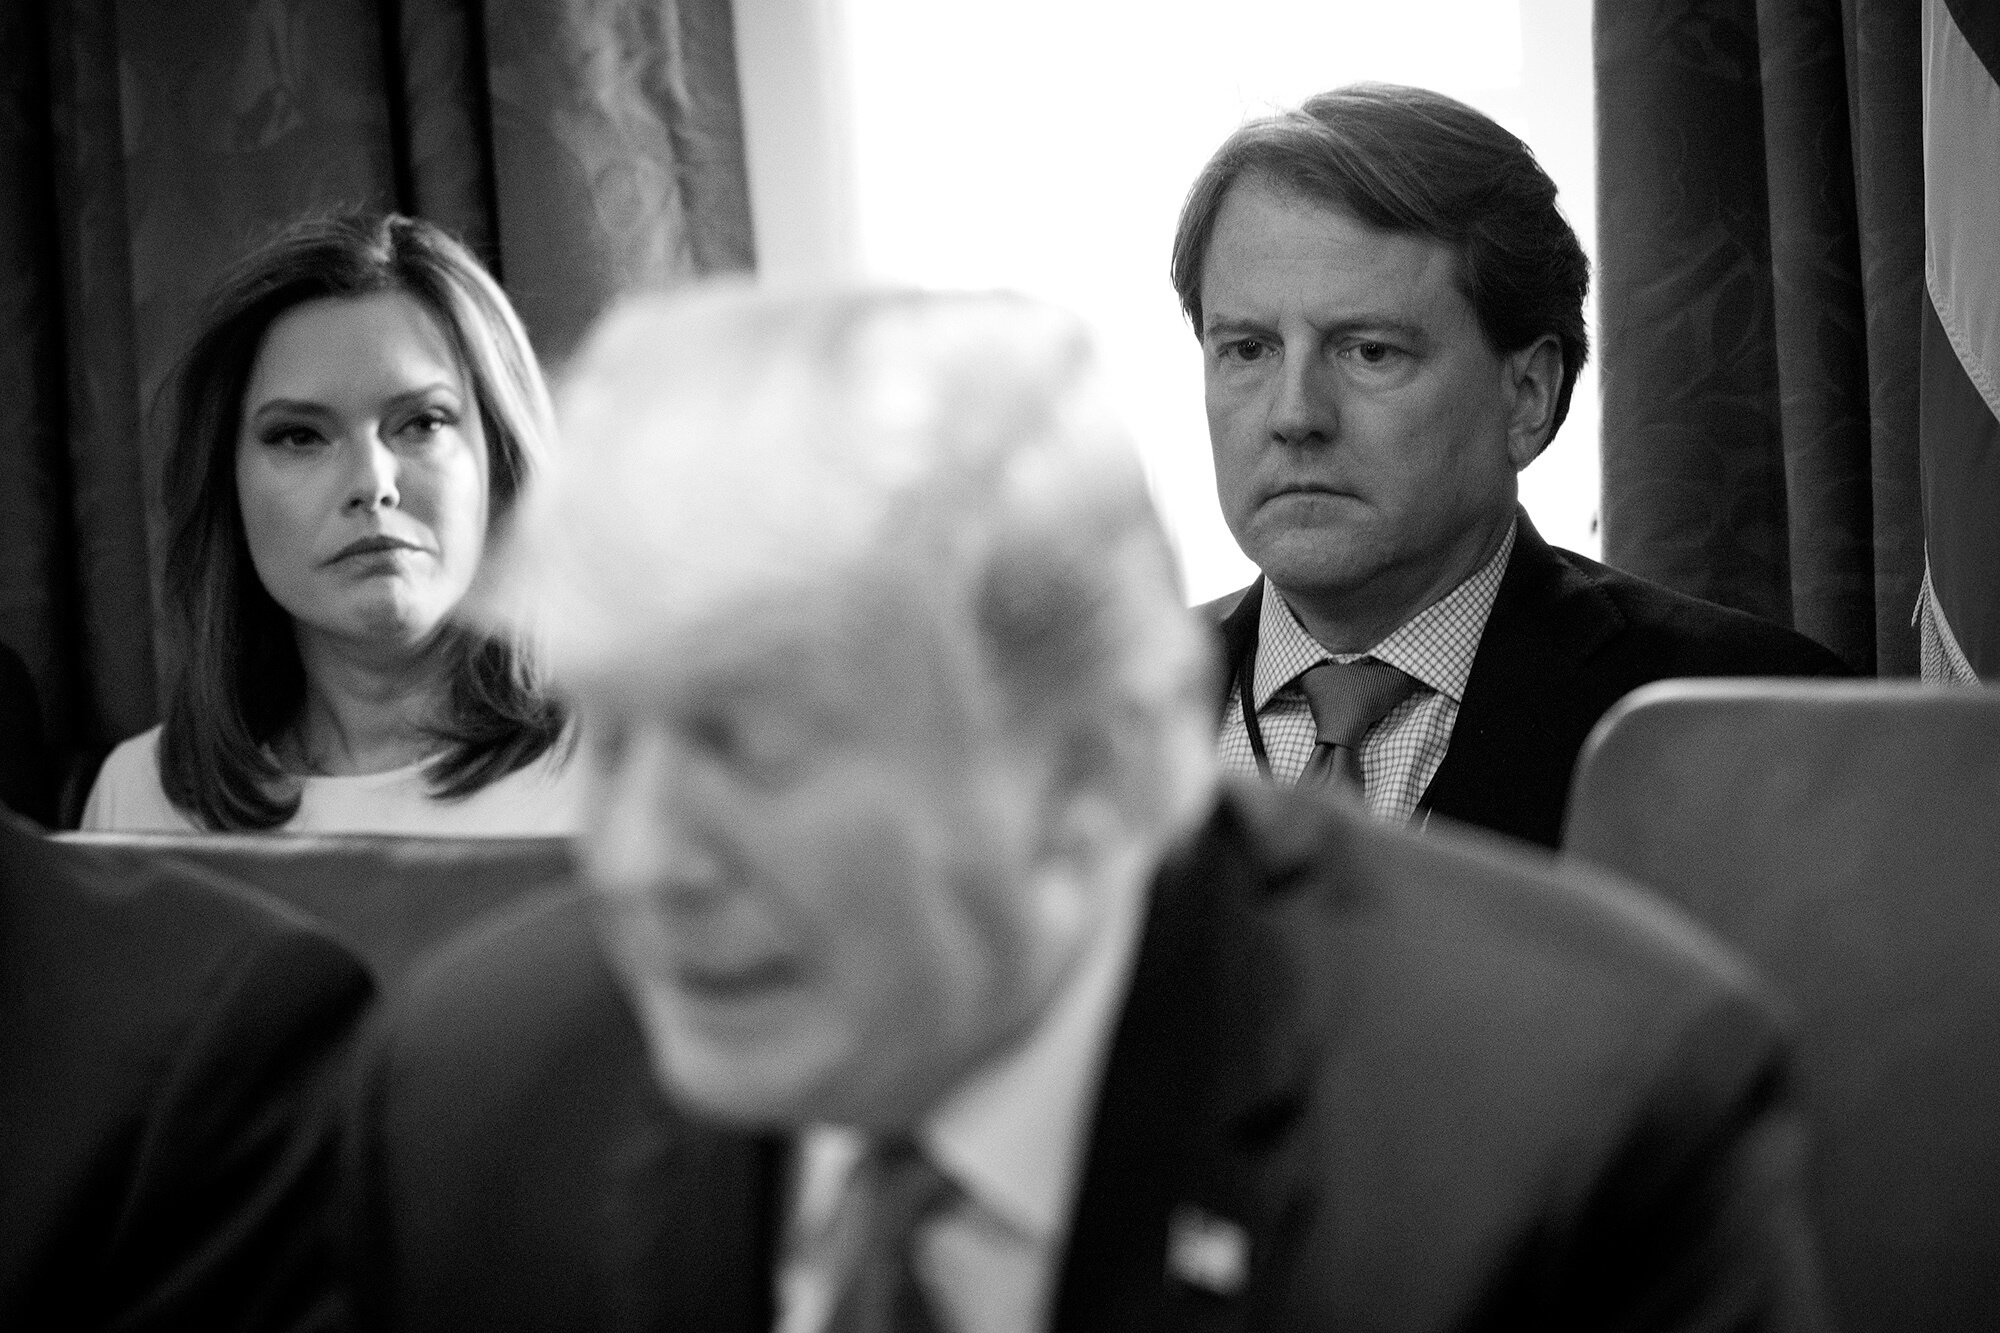 Congressional subpoena power is currently too weak to be an effective check on a corrupt president. Despite efforts by the House of Representatives to demand that Don McGahn, White House counsel under Trump, testify in the Mueller probe, McGahn was able to avoid testifying.